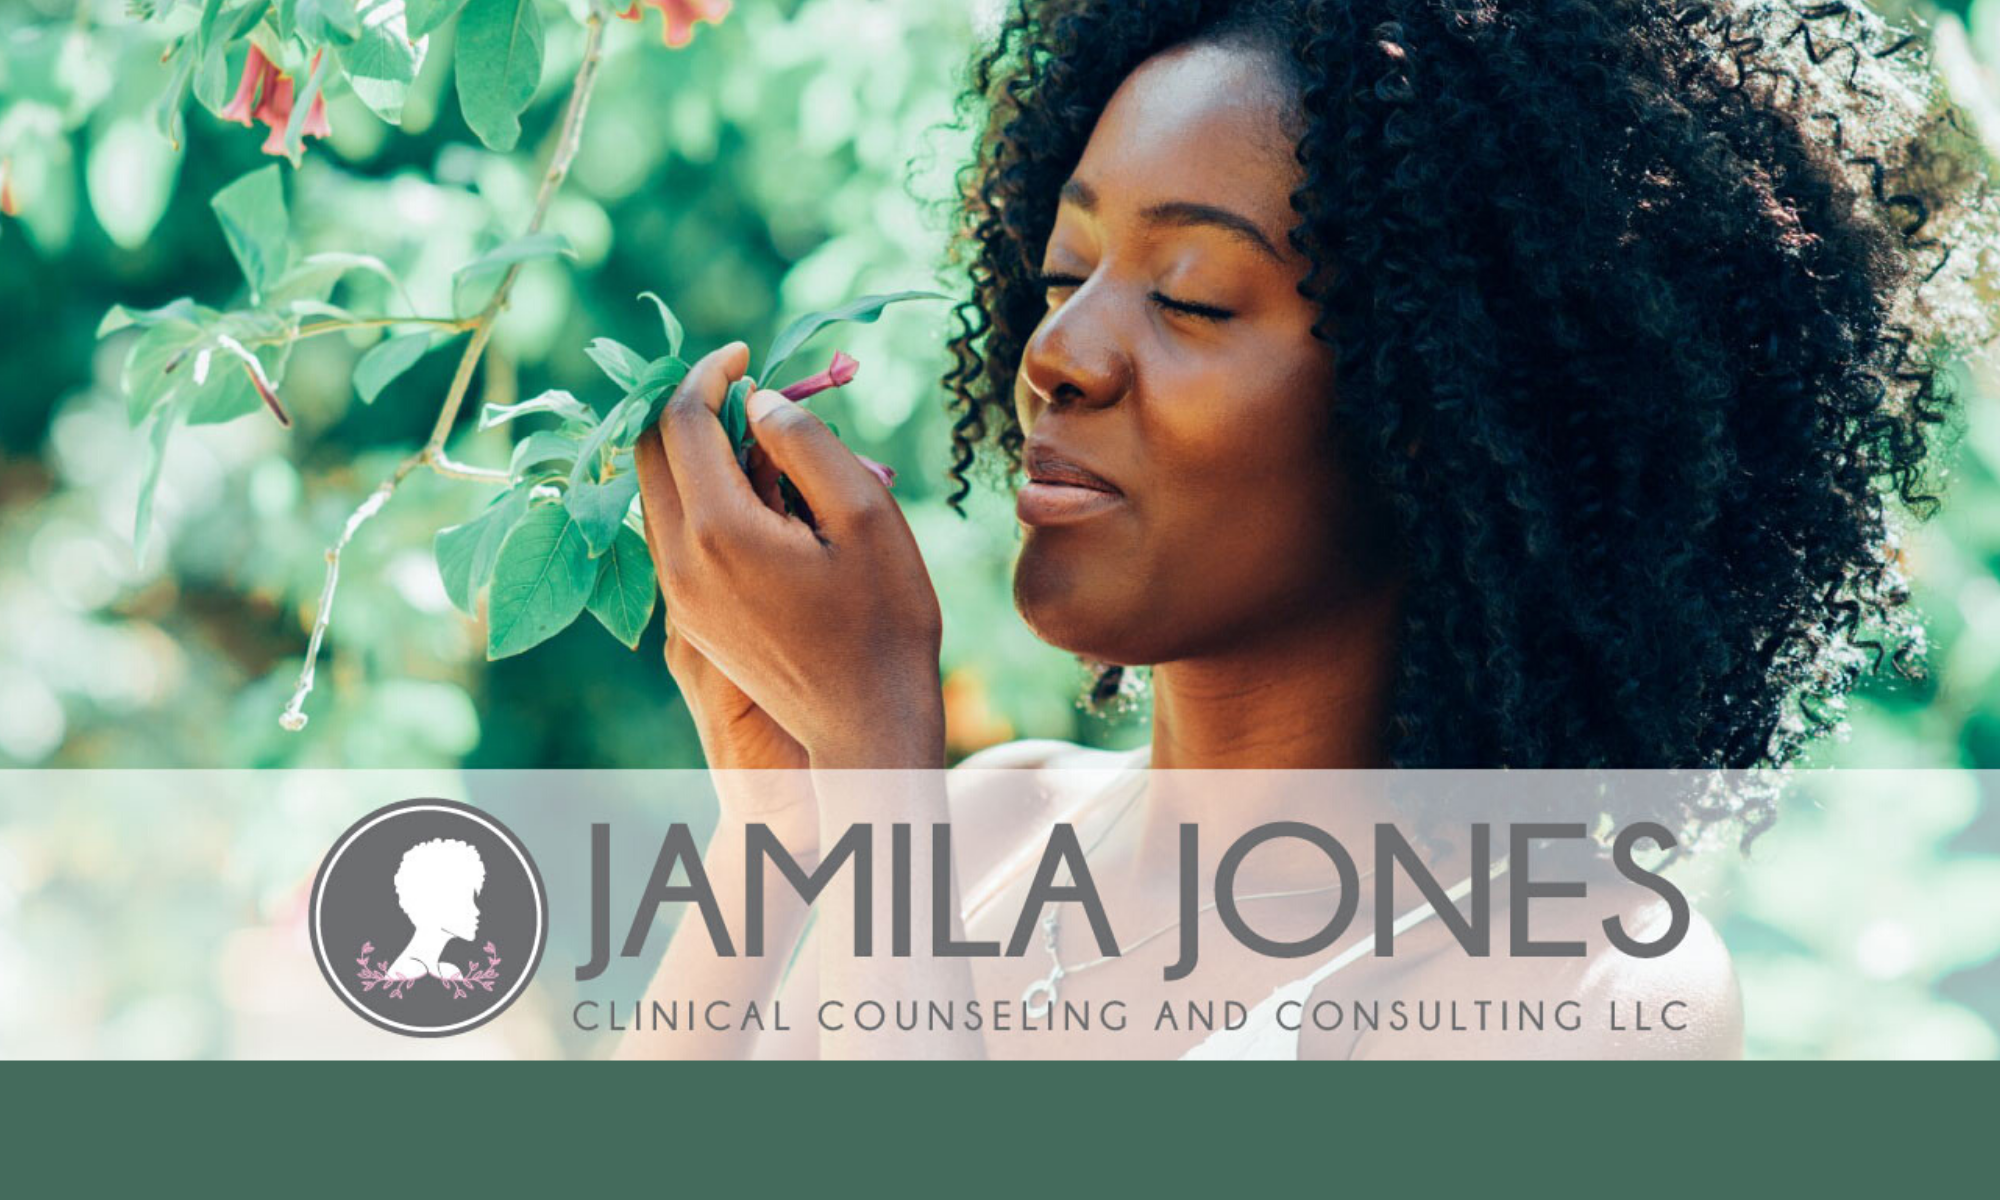 Jamila Jones Clinical Counseling & Consulting